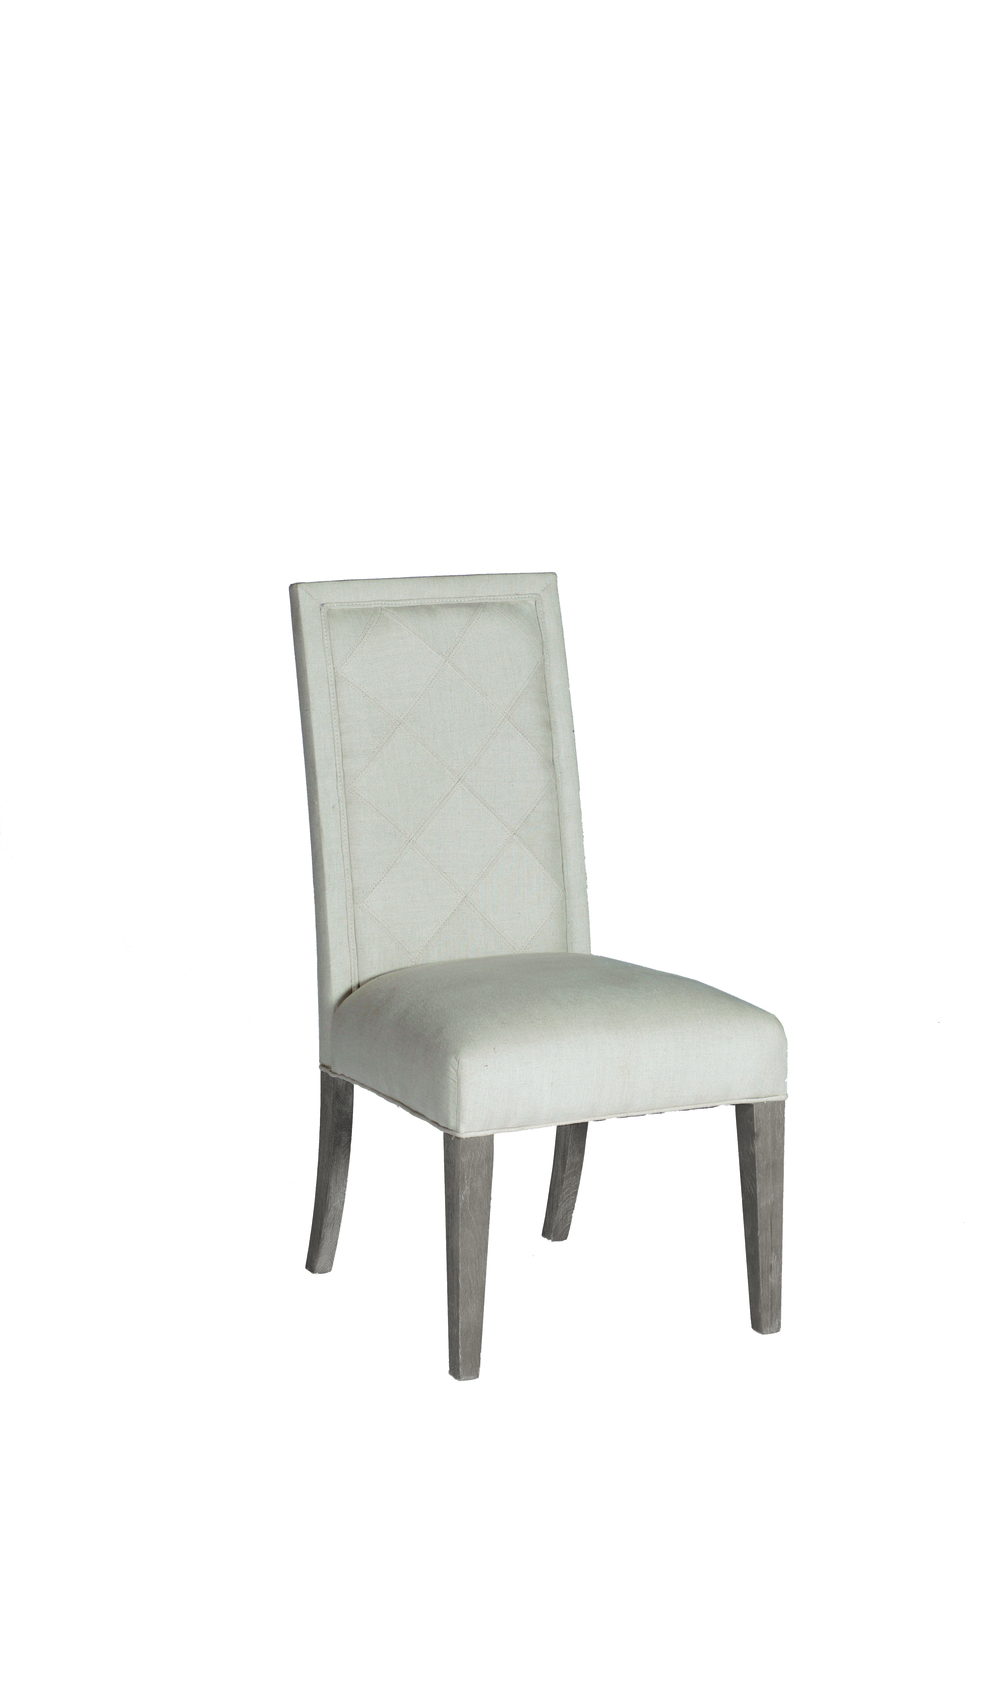 GABBY - Verona Chair, 2/carton